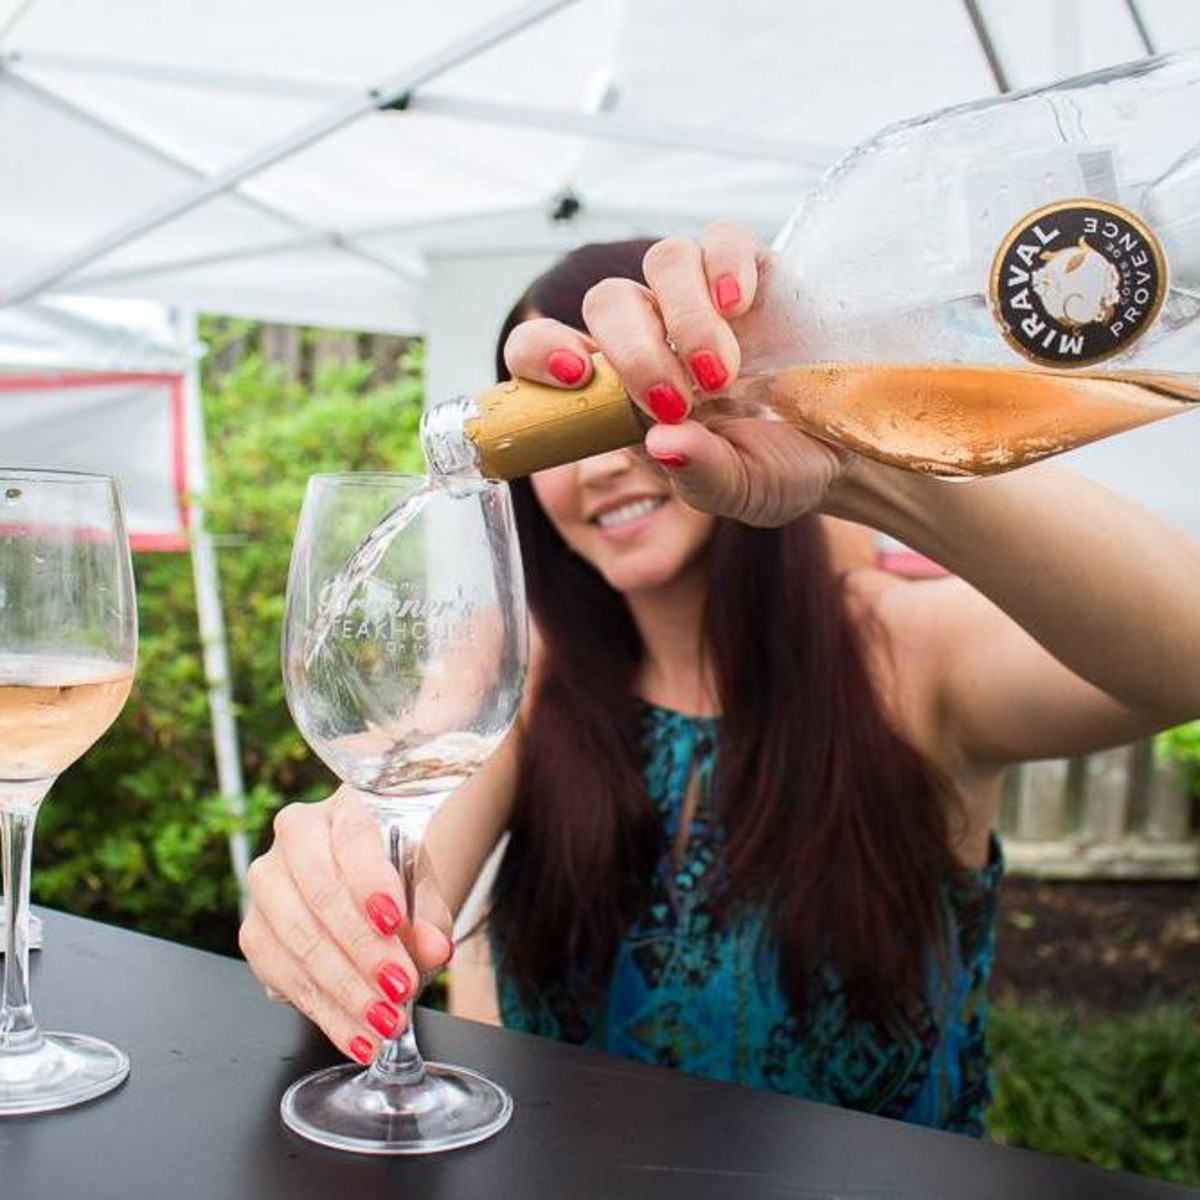 Houston_Marcy_what to do this weekend, april 5, brenners on the bayou wine fest